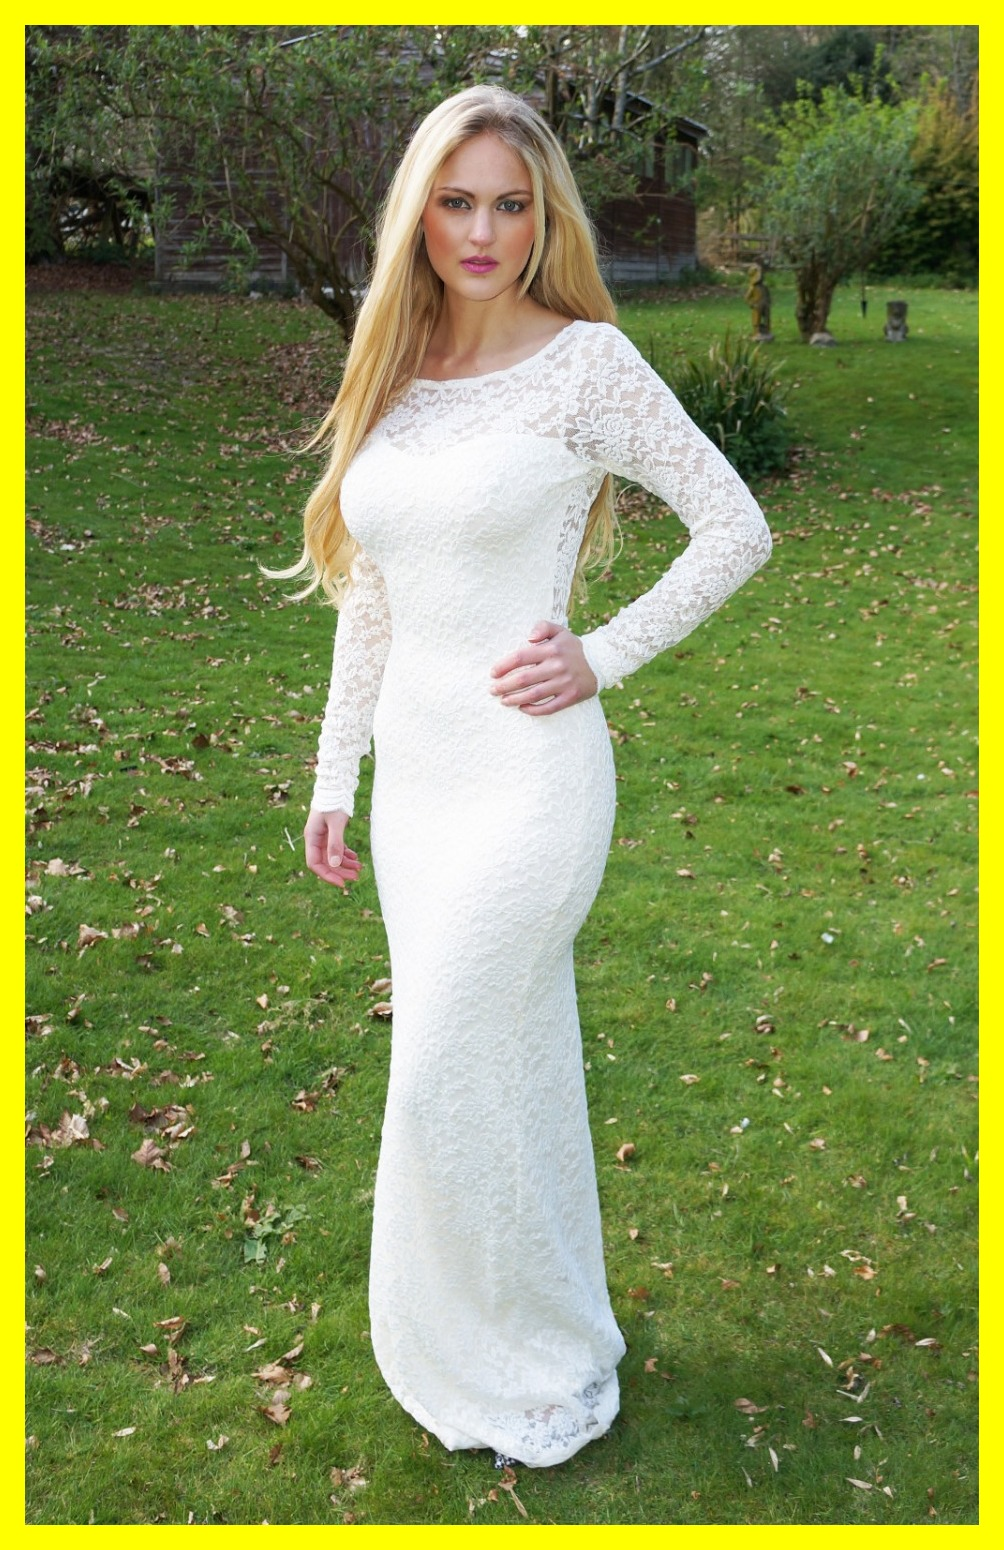 Beach wedding dresses uk long sleeved dress champagne for Petite dresses for wedding